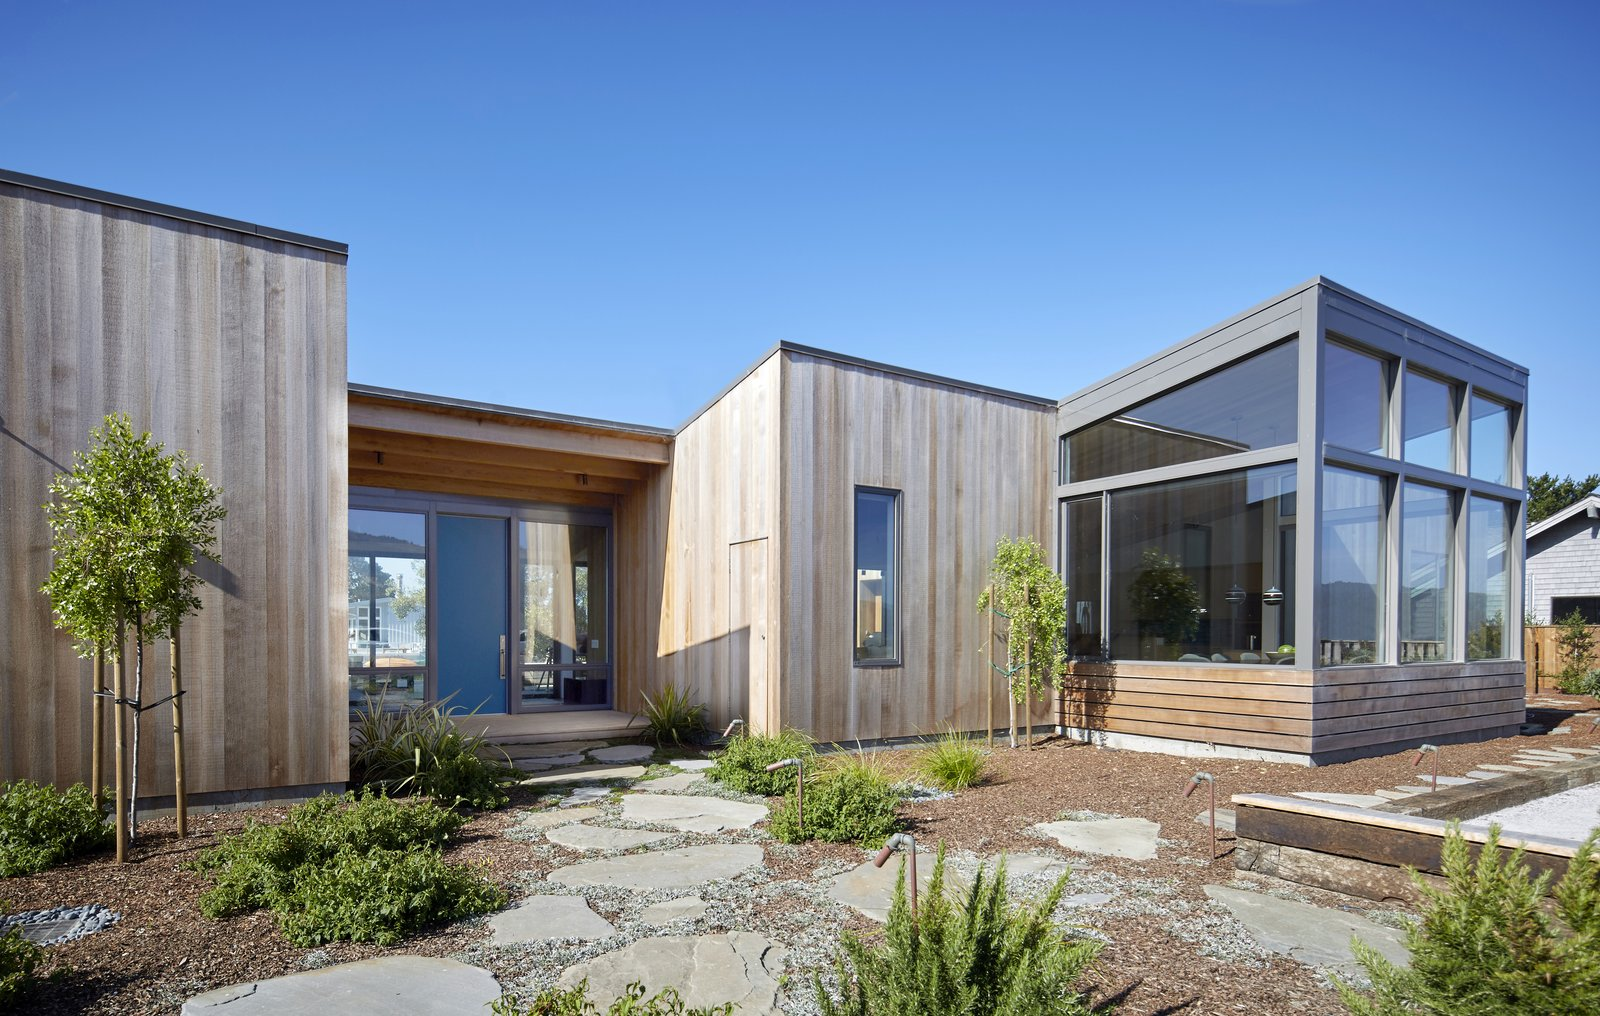 #TurnbullGriffinHaesloop #outdoor #exterior #landscape #window   Stinson Beach Lagoon Residence by Turnbull Griffin Haesloop Architects